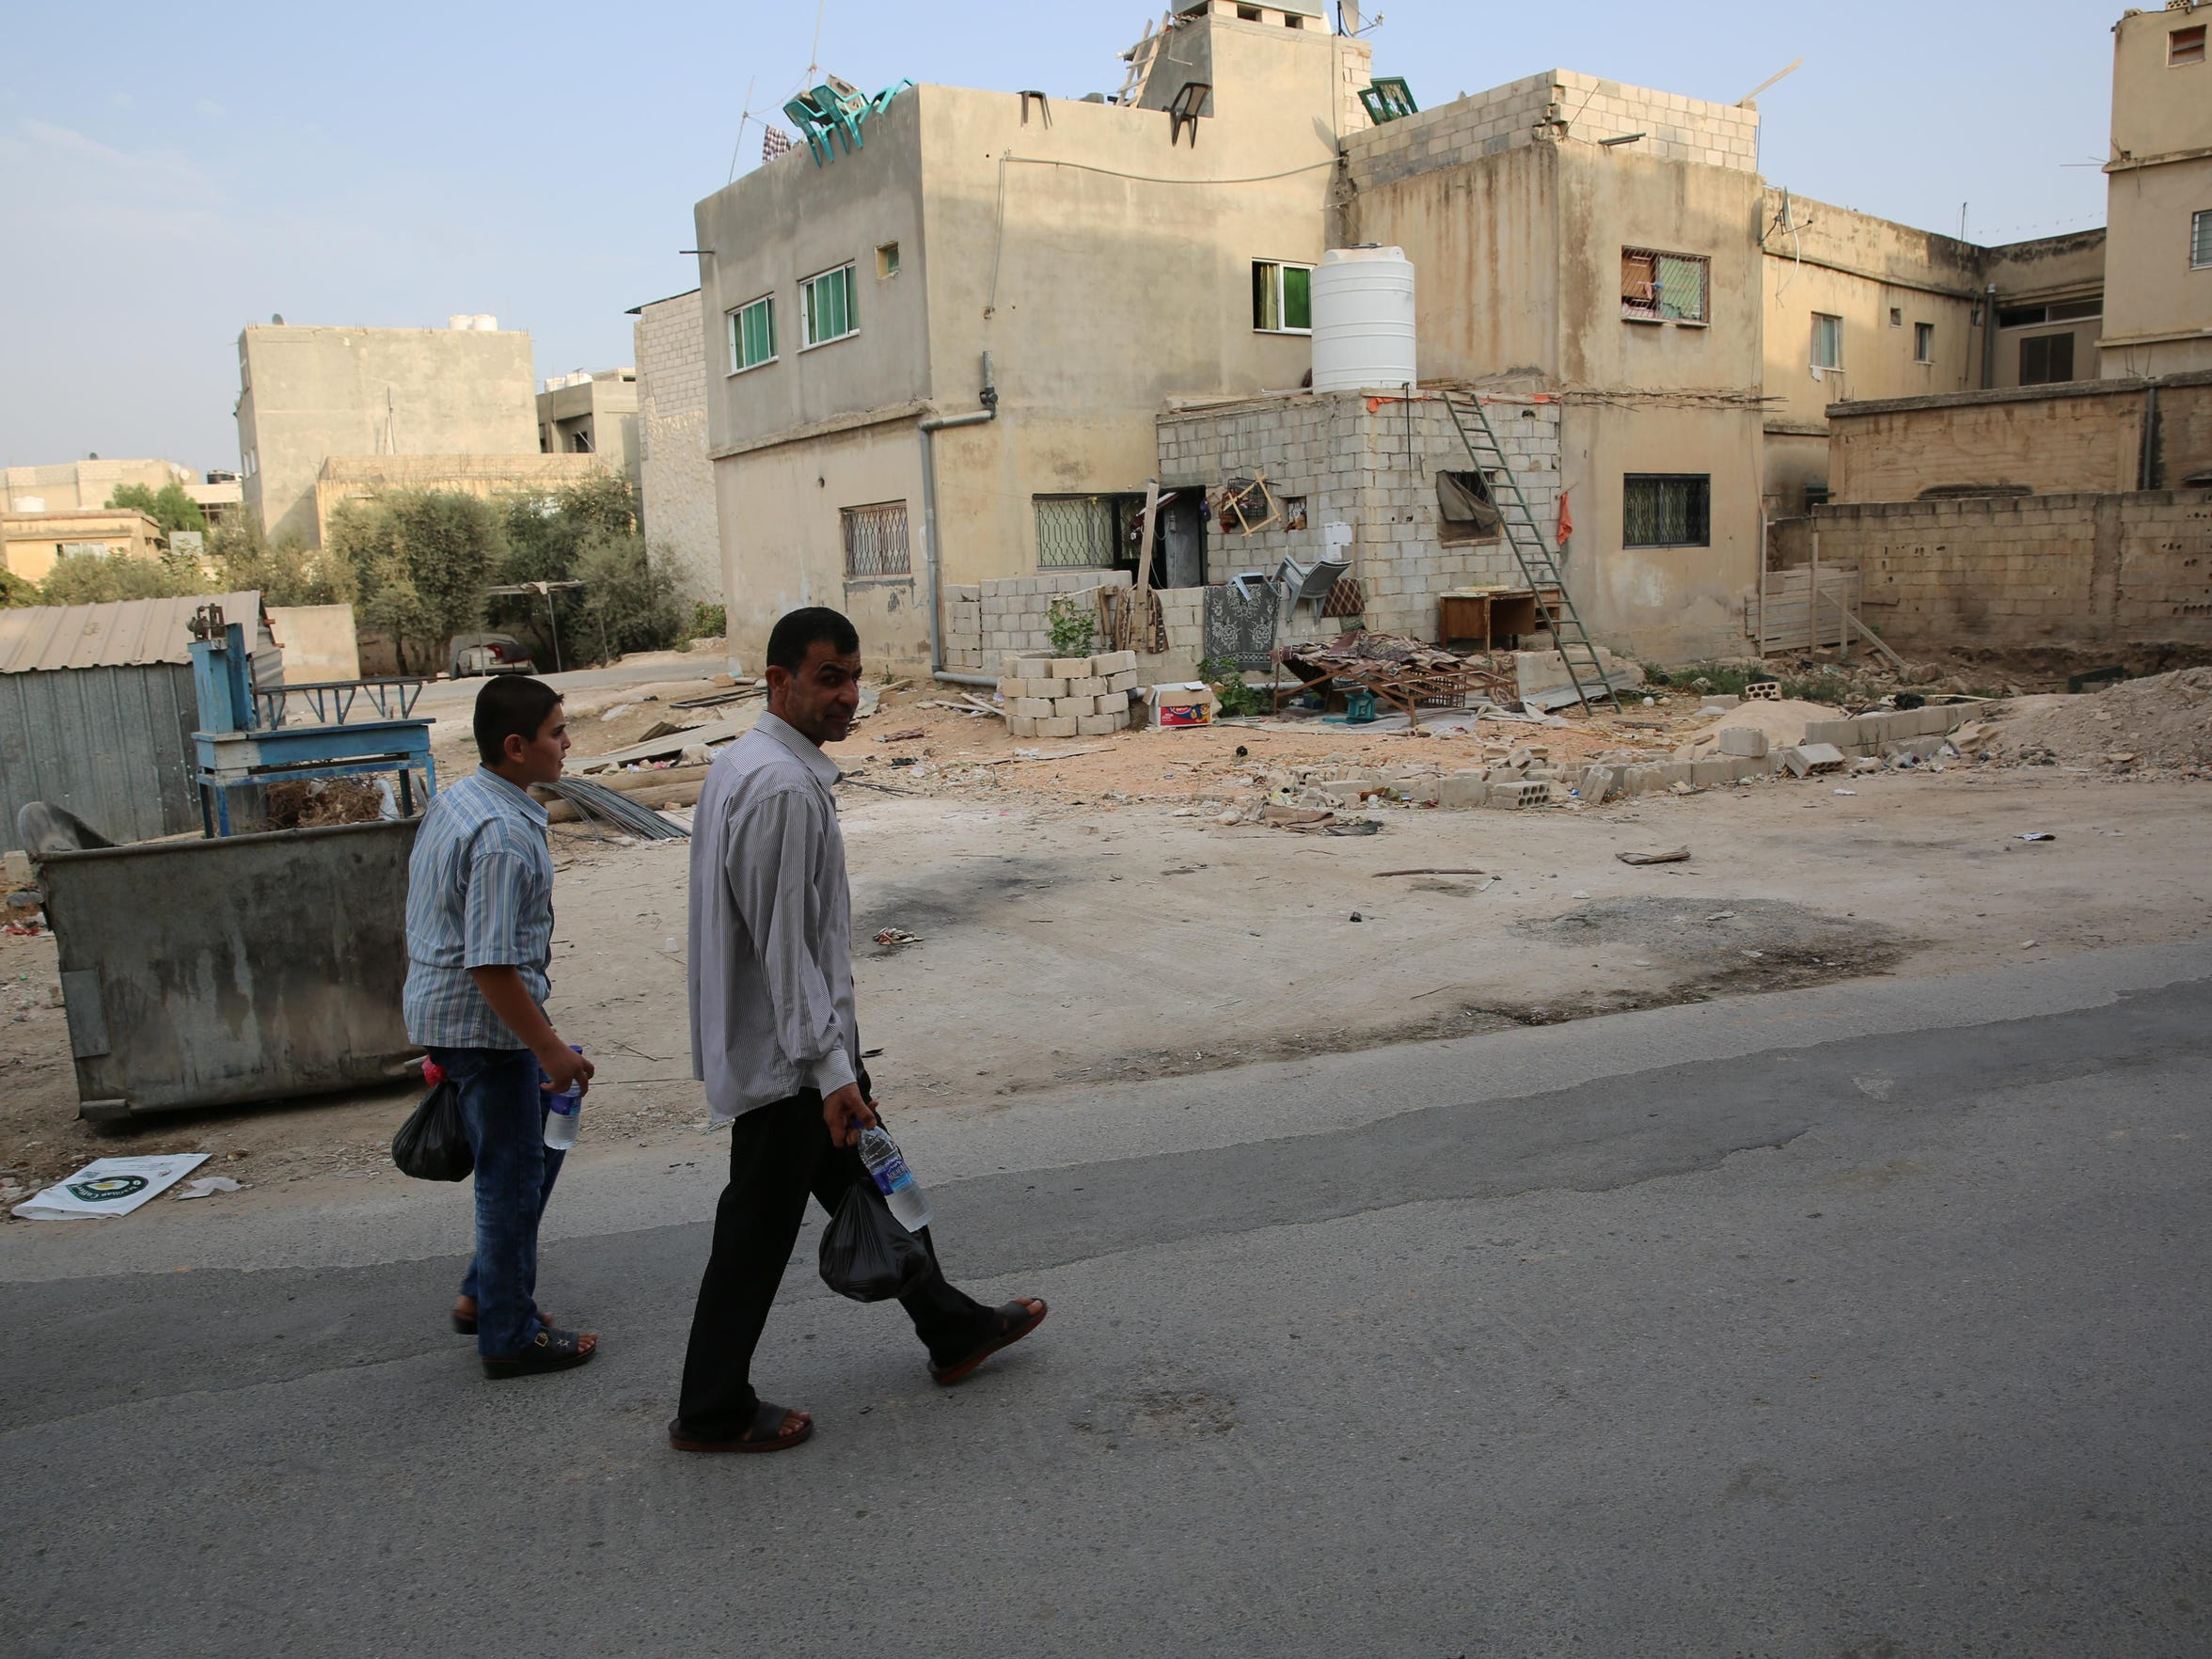 Ahmad Al Tybawi and his eldest son, Abdulbaset, take groceries home through their Jordanian town of Taiyyba.